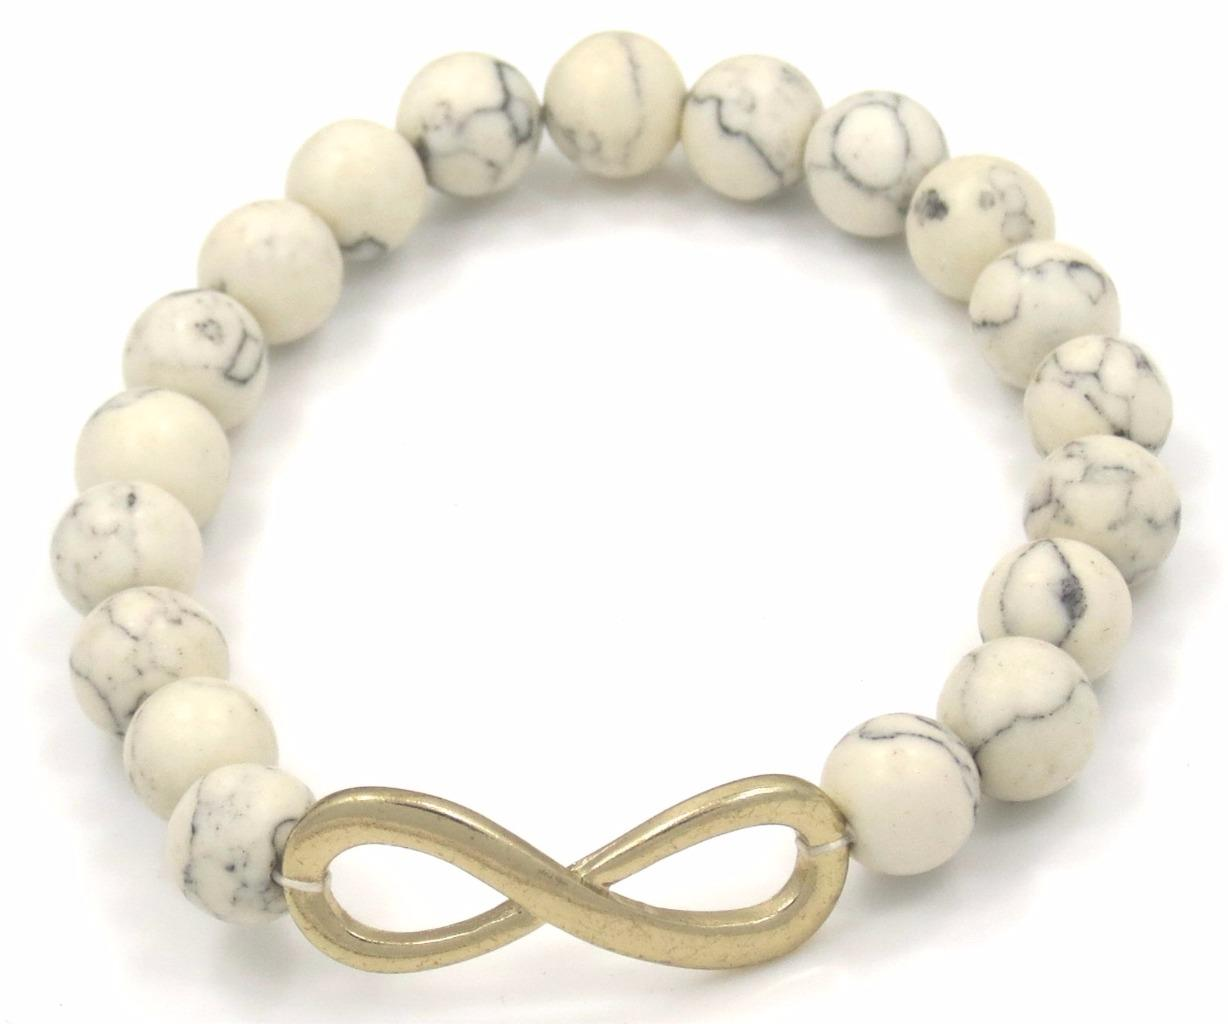 Infinity Symbol Cross Horseshoe Charm Bracelet Silver Gold Beaded 12